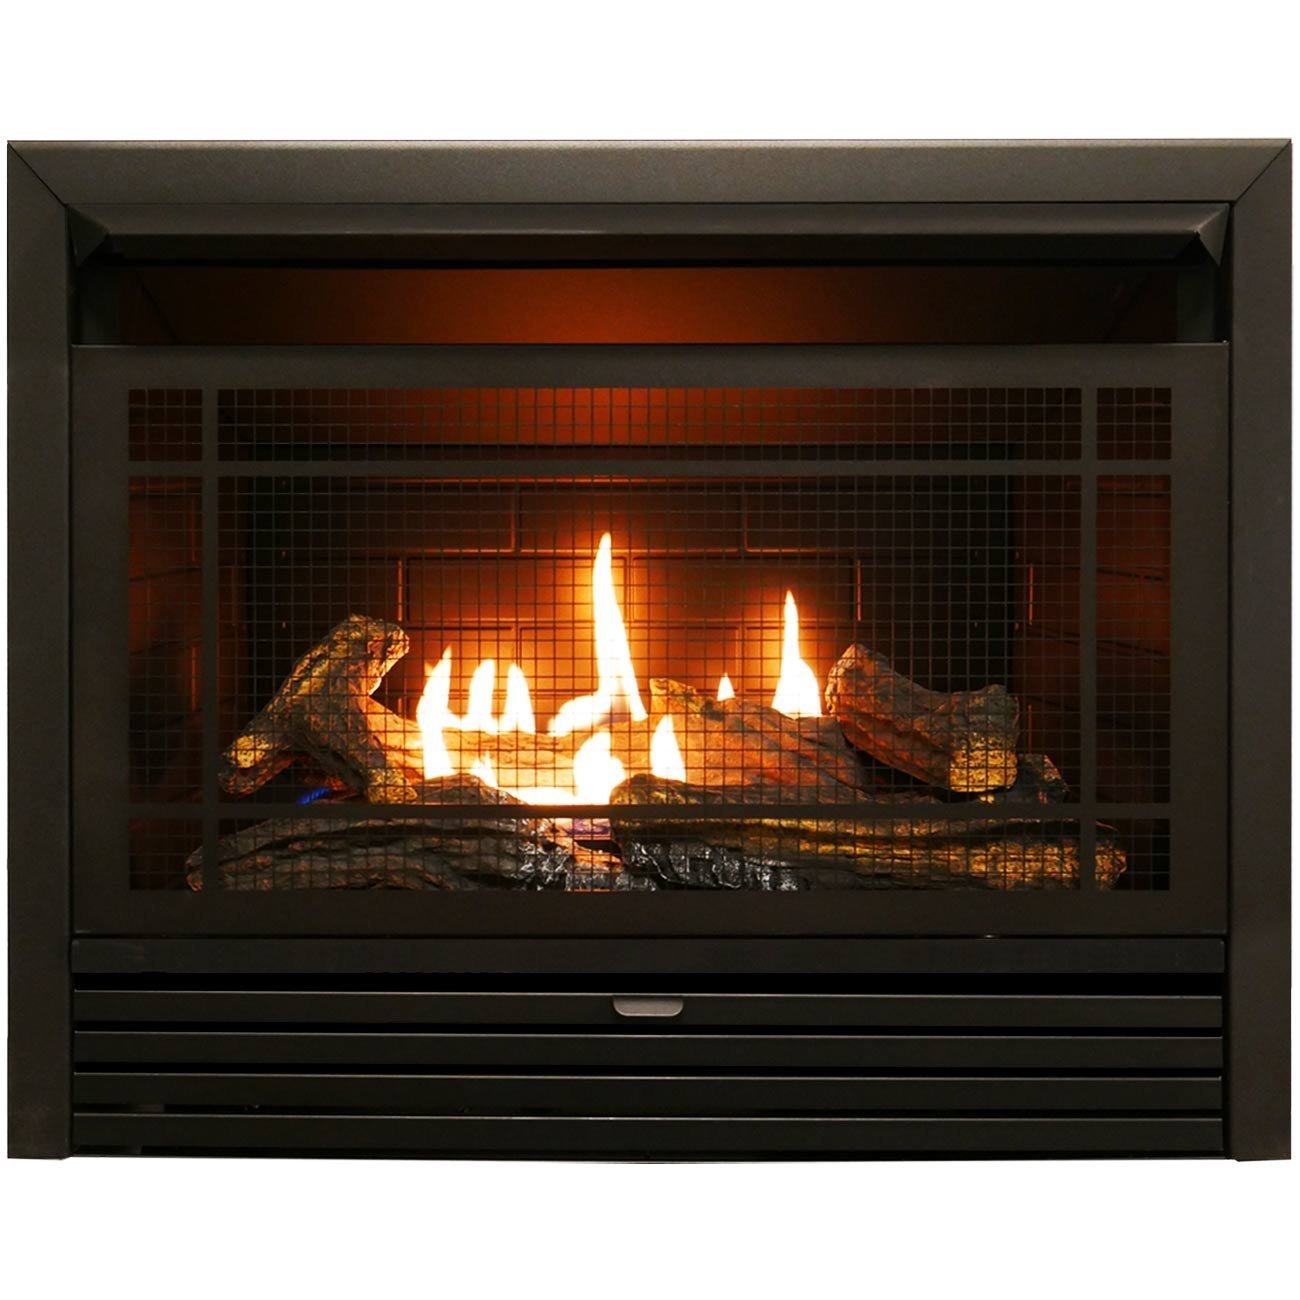 Wondrous Duluth Forge Dual Fuel Vent Free Insert 26 000 Btu Remote Control Fireplace Insert Black Download Free Architecture Designs Boapuretrmadebymaigaardcom